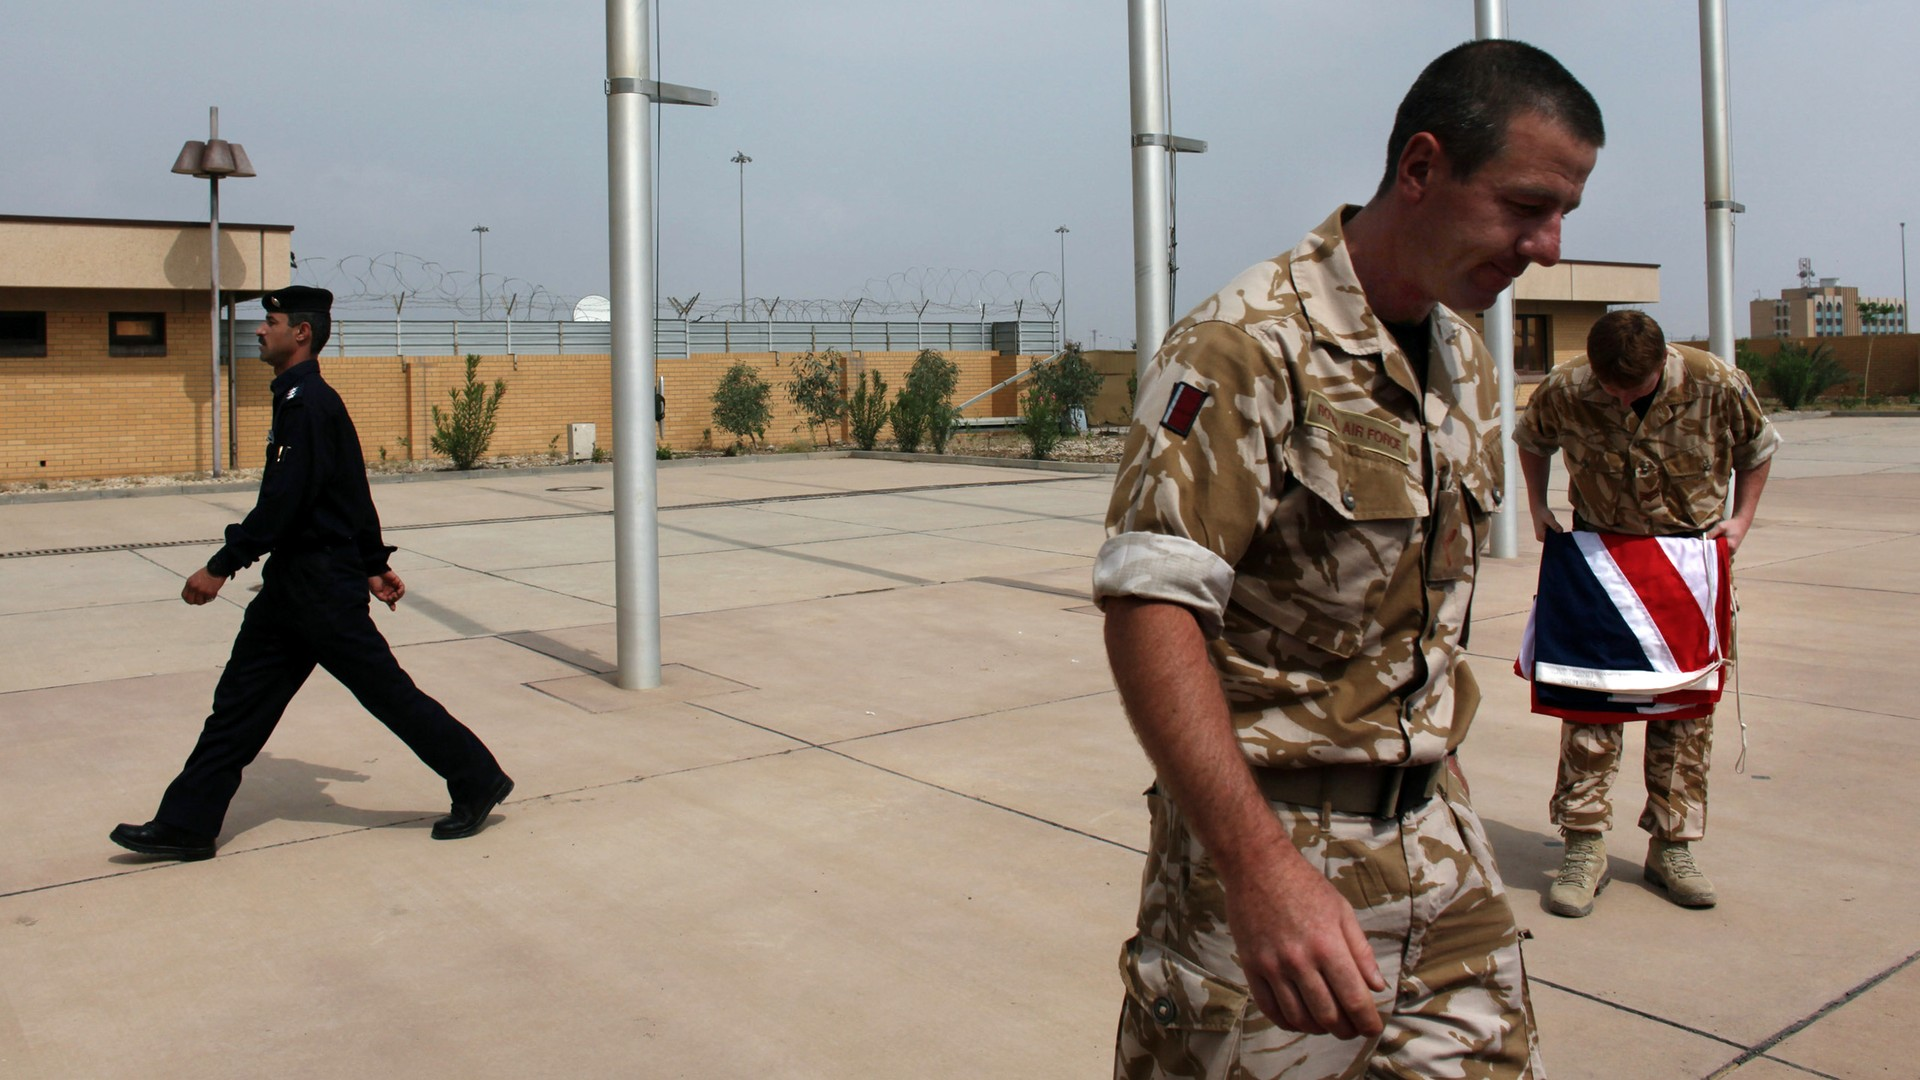 An Iraqi policeman walks past two British military officers, one folding the Union Jack.